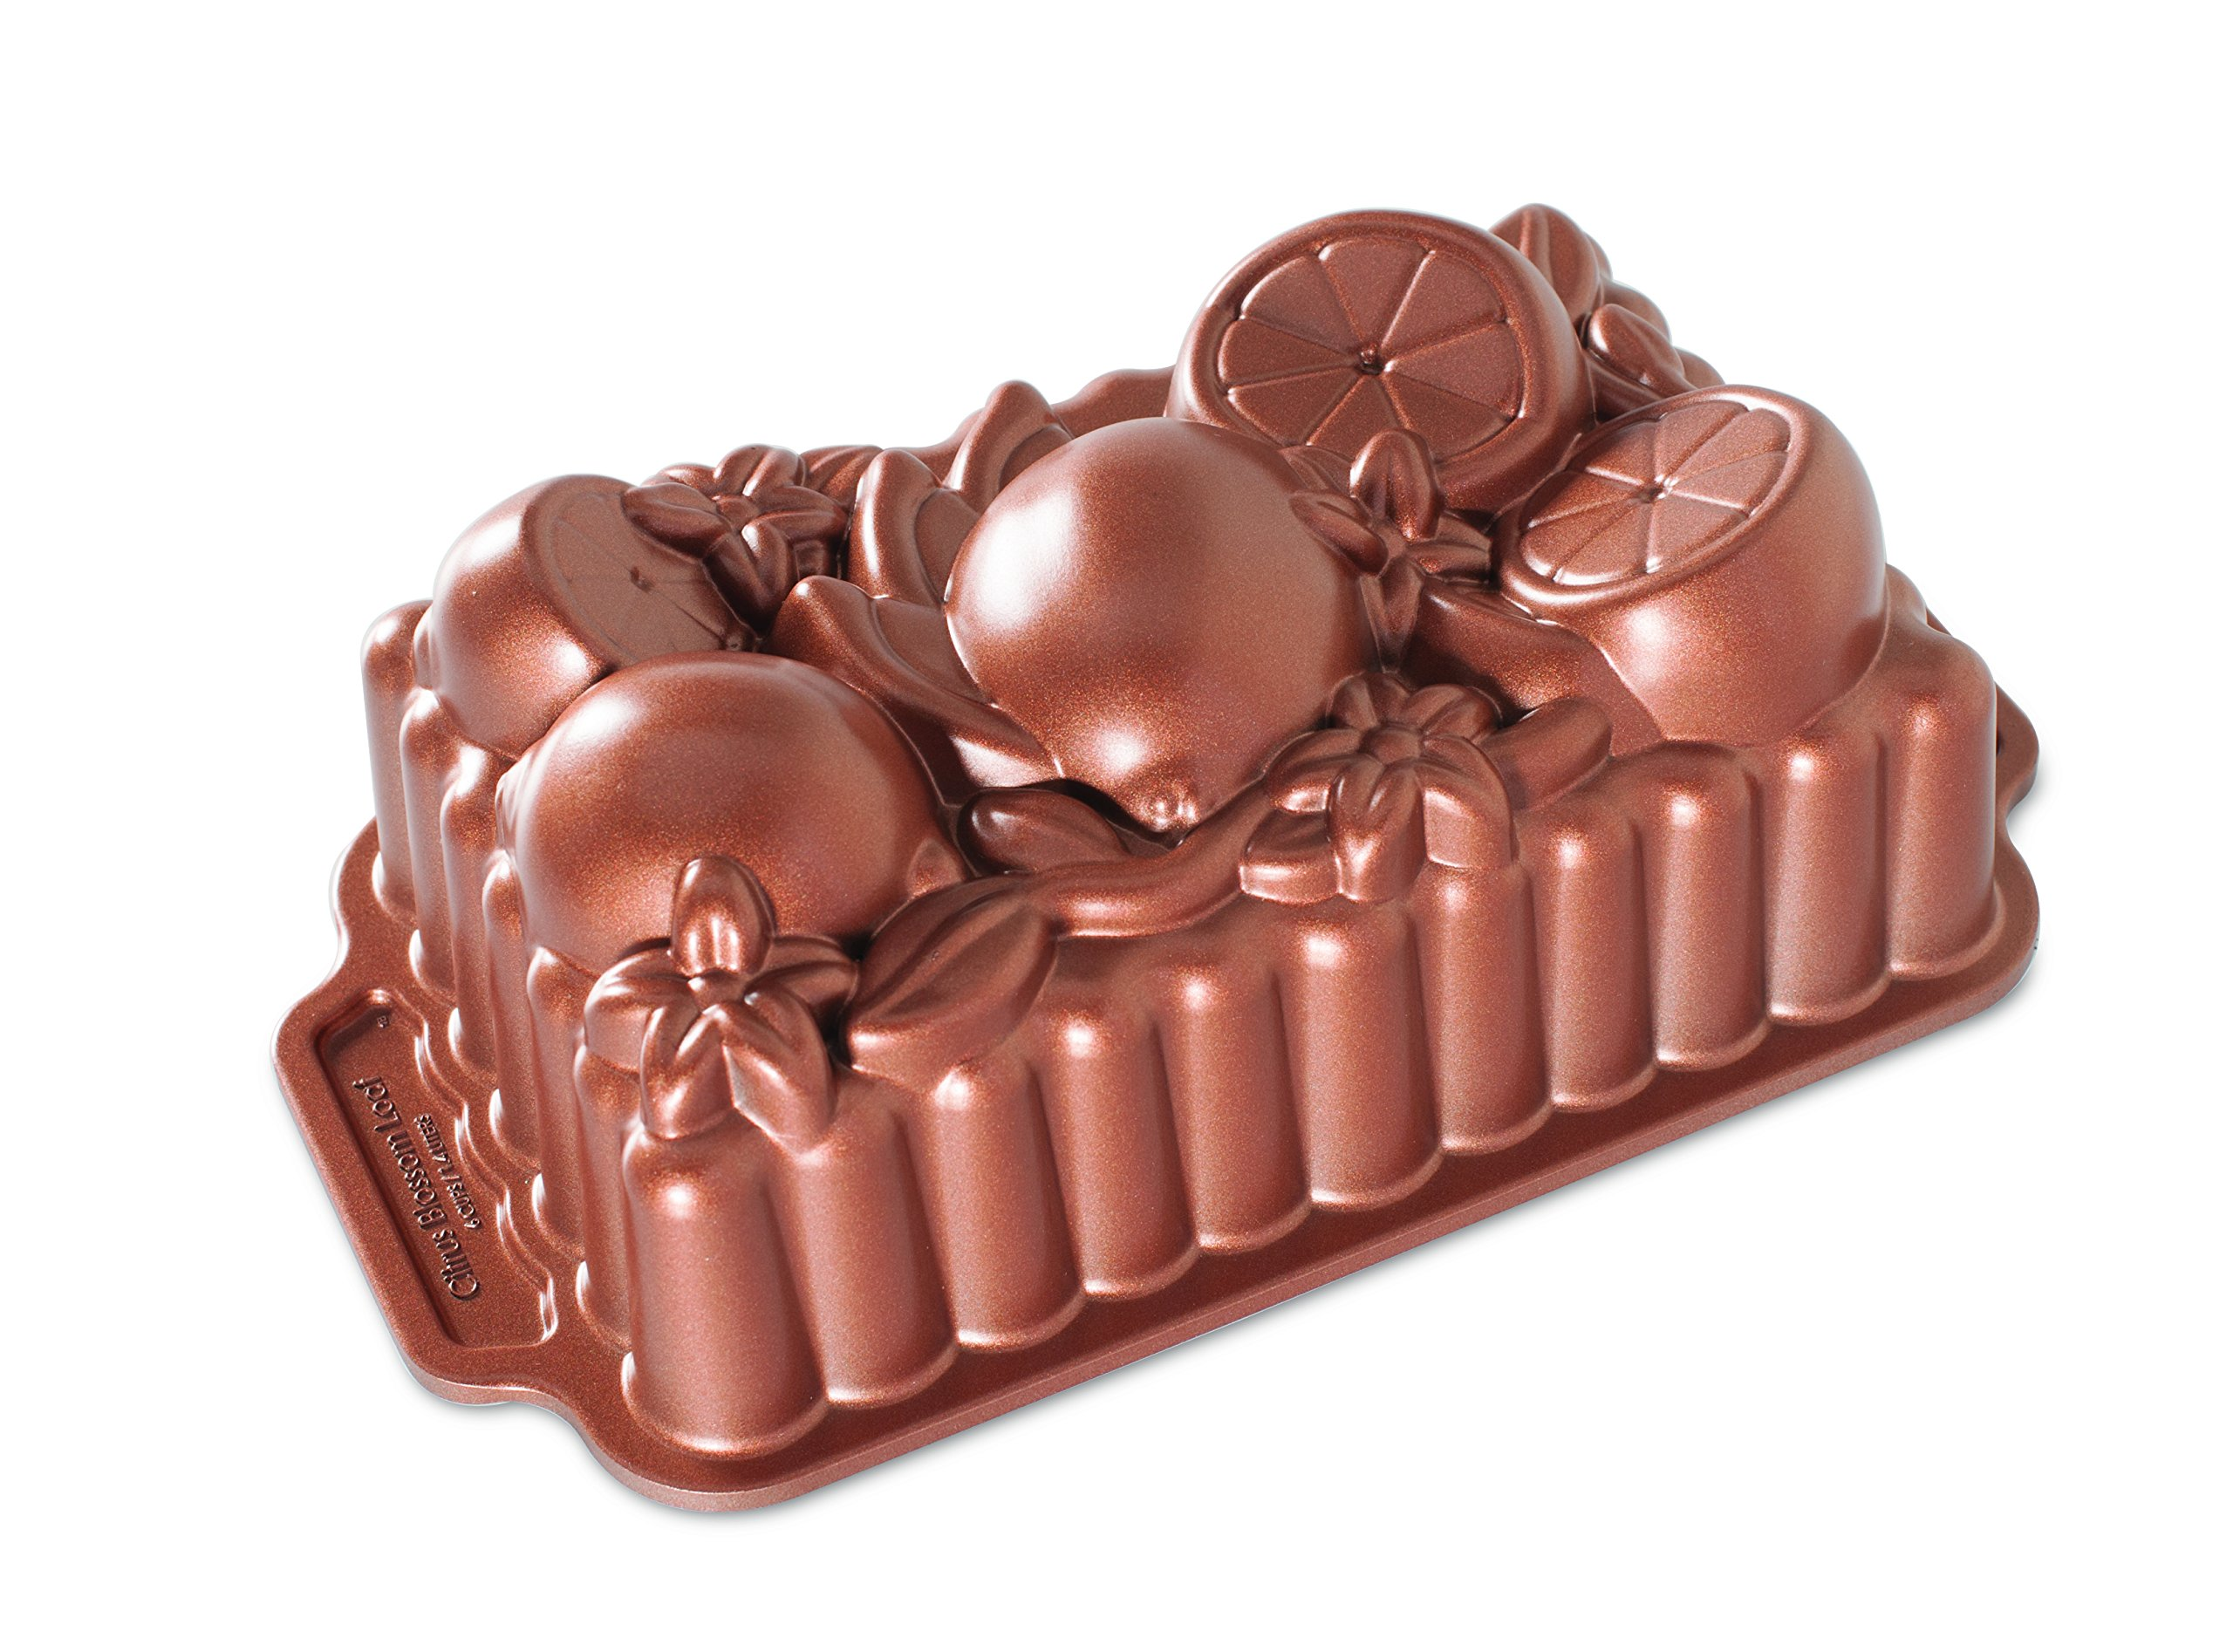 Nordic Ware 90248 Citrus Blossom Loaf, One Size, Copper by Nordic Ware